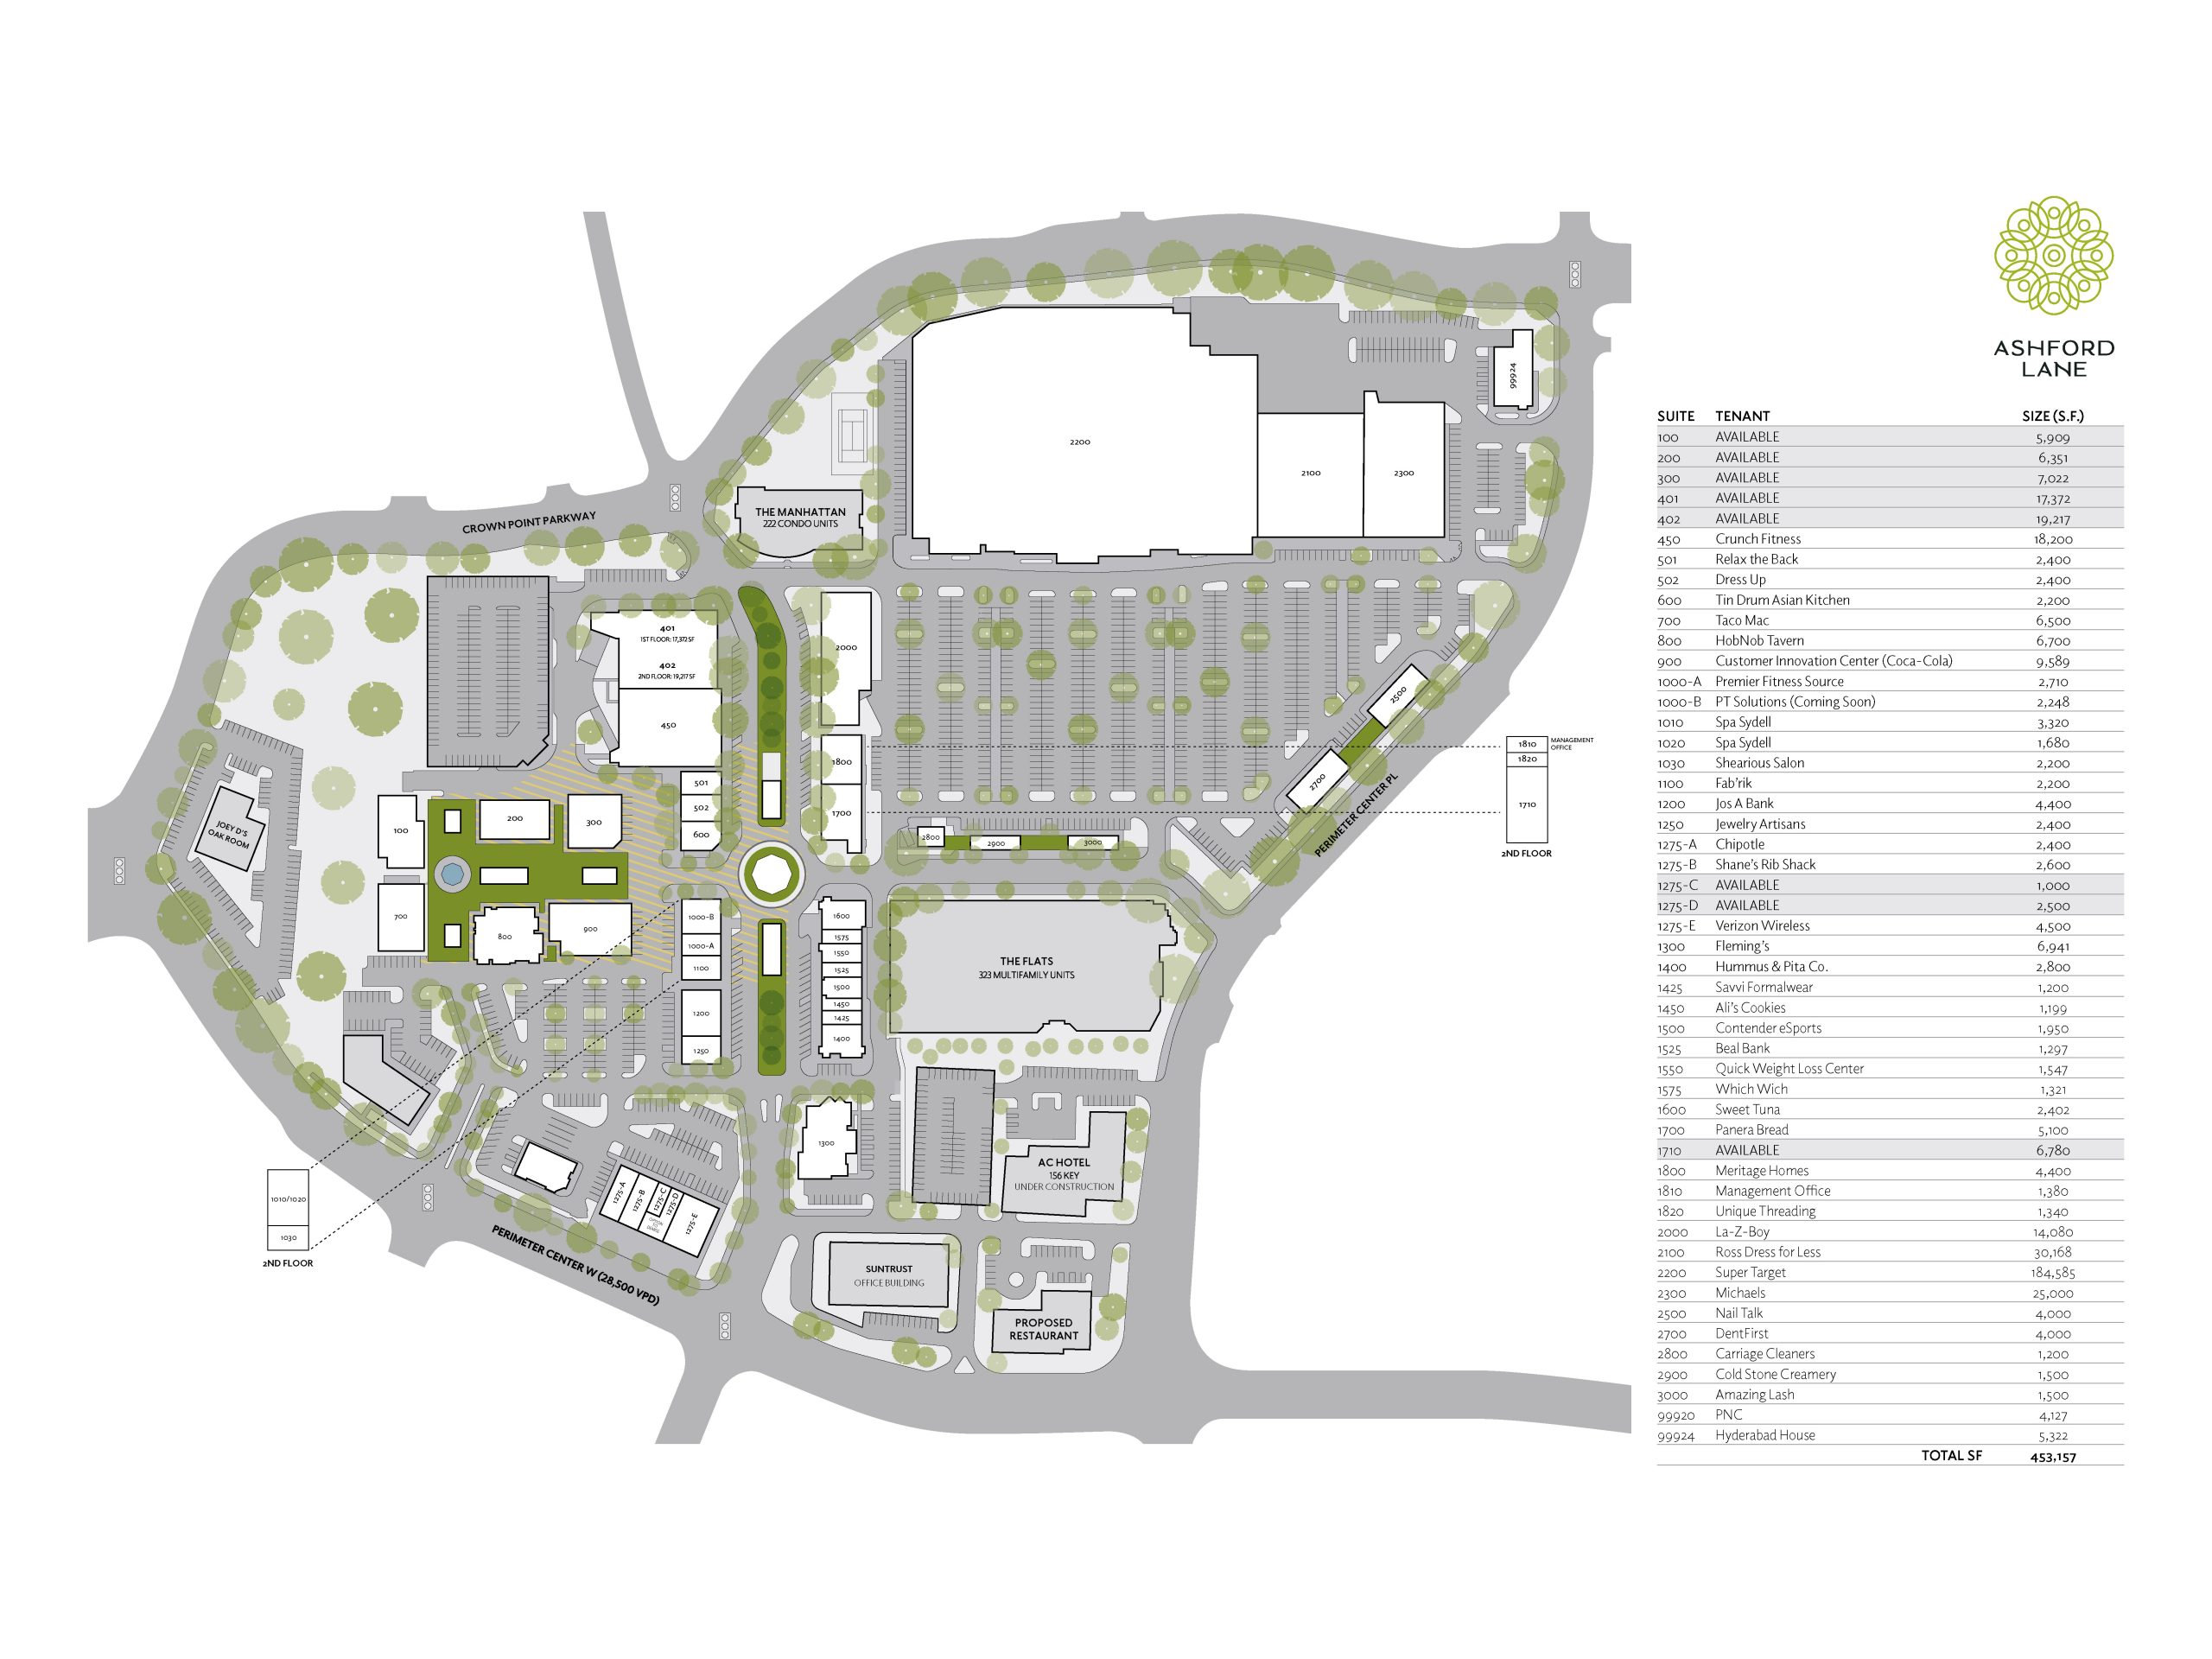 Ashford Lane (Formerly Perimeter Place) Site Plan